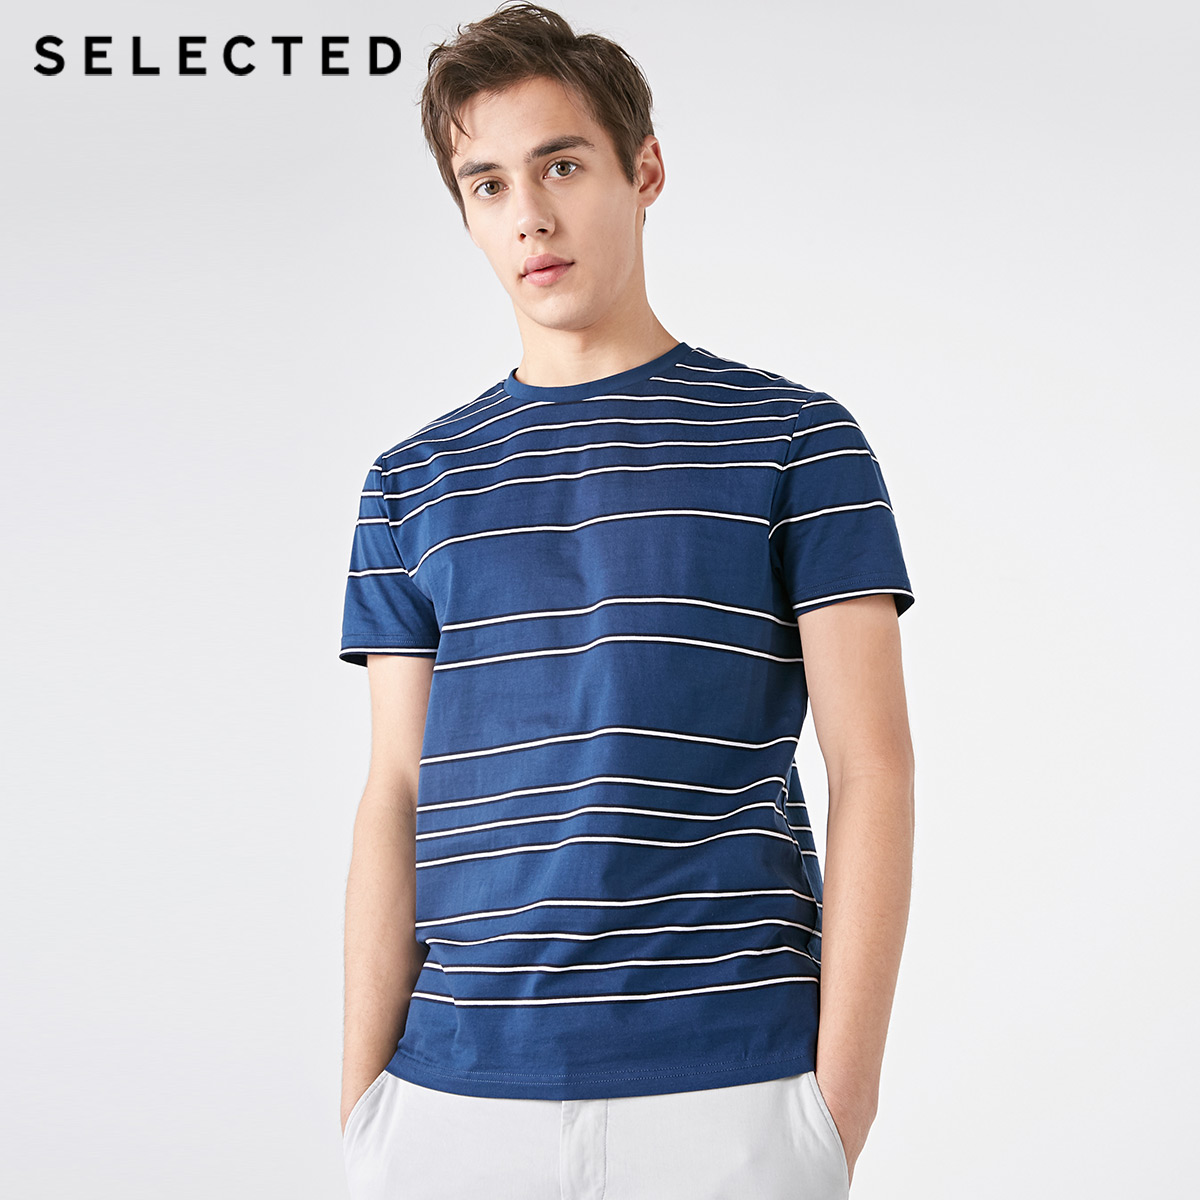 SELECTED Men's 100% Cotton Striped Business Casual Short-sleeved T-shirt S | 419101523